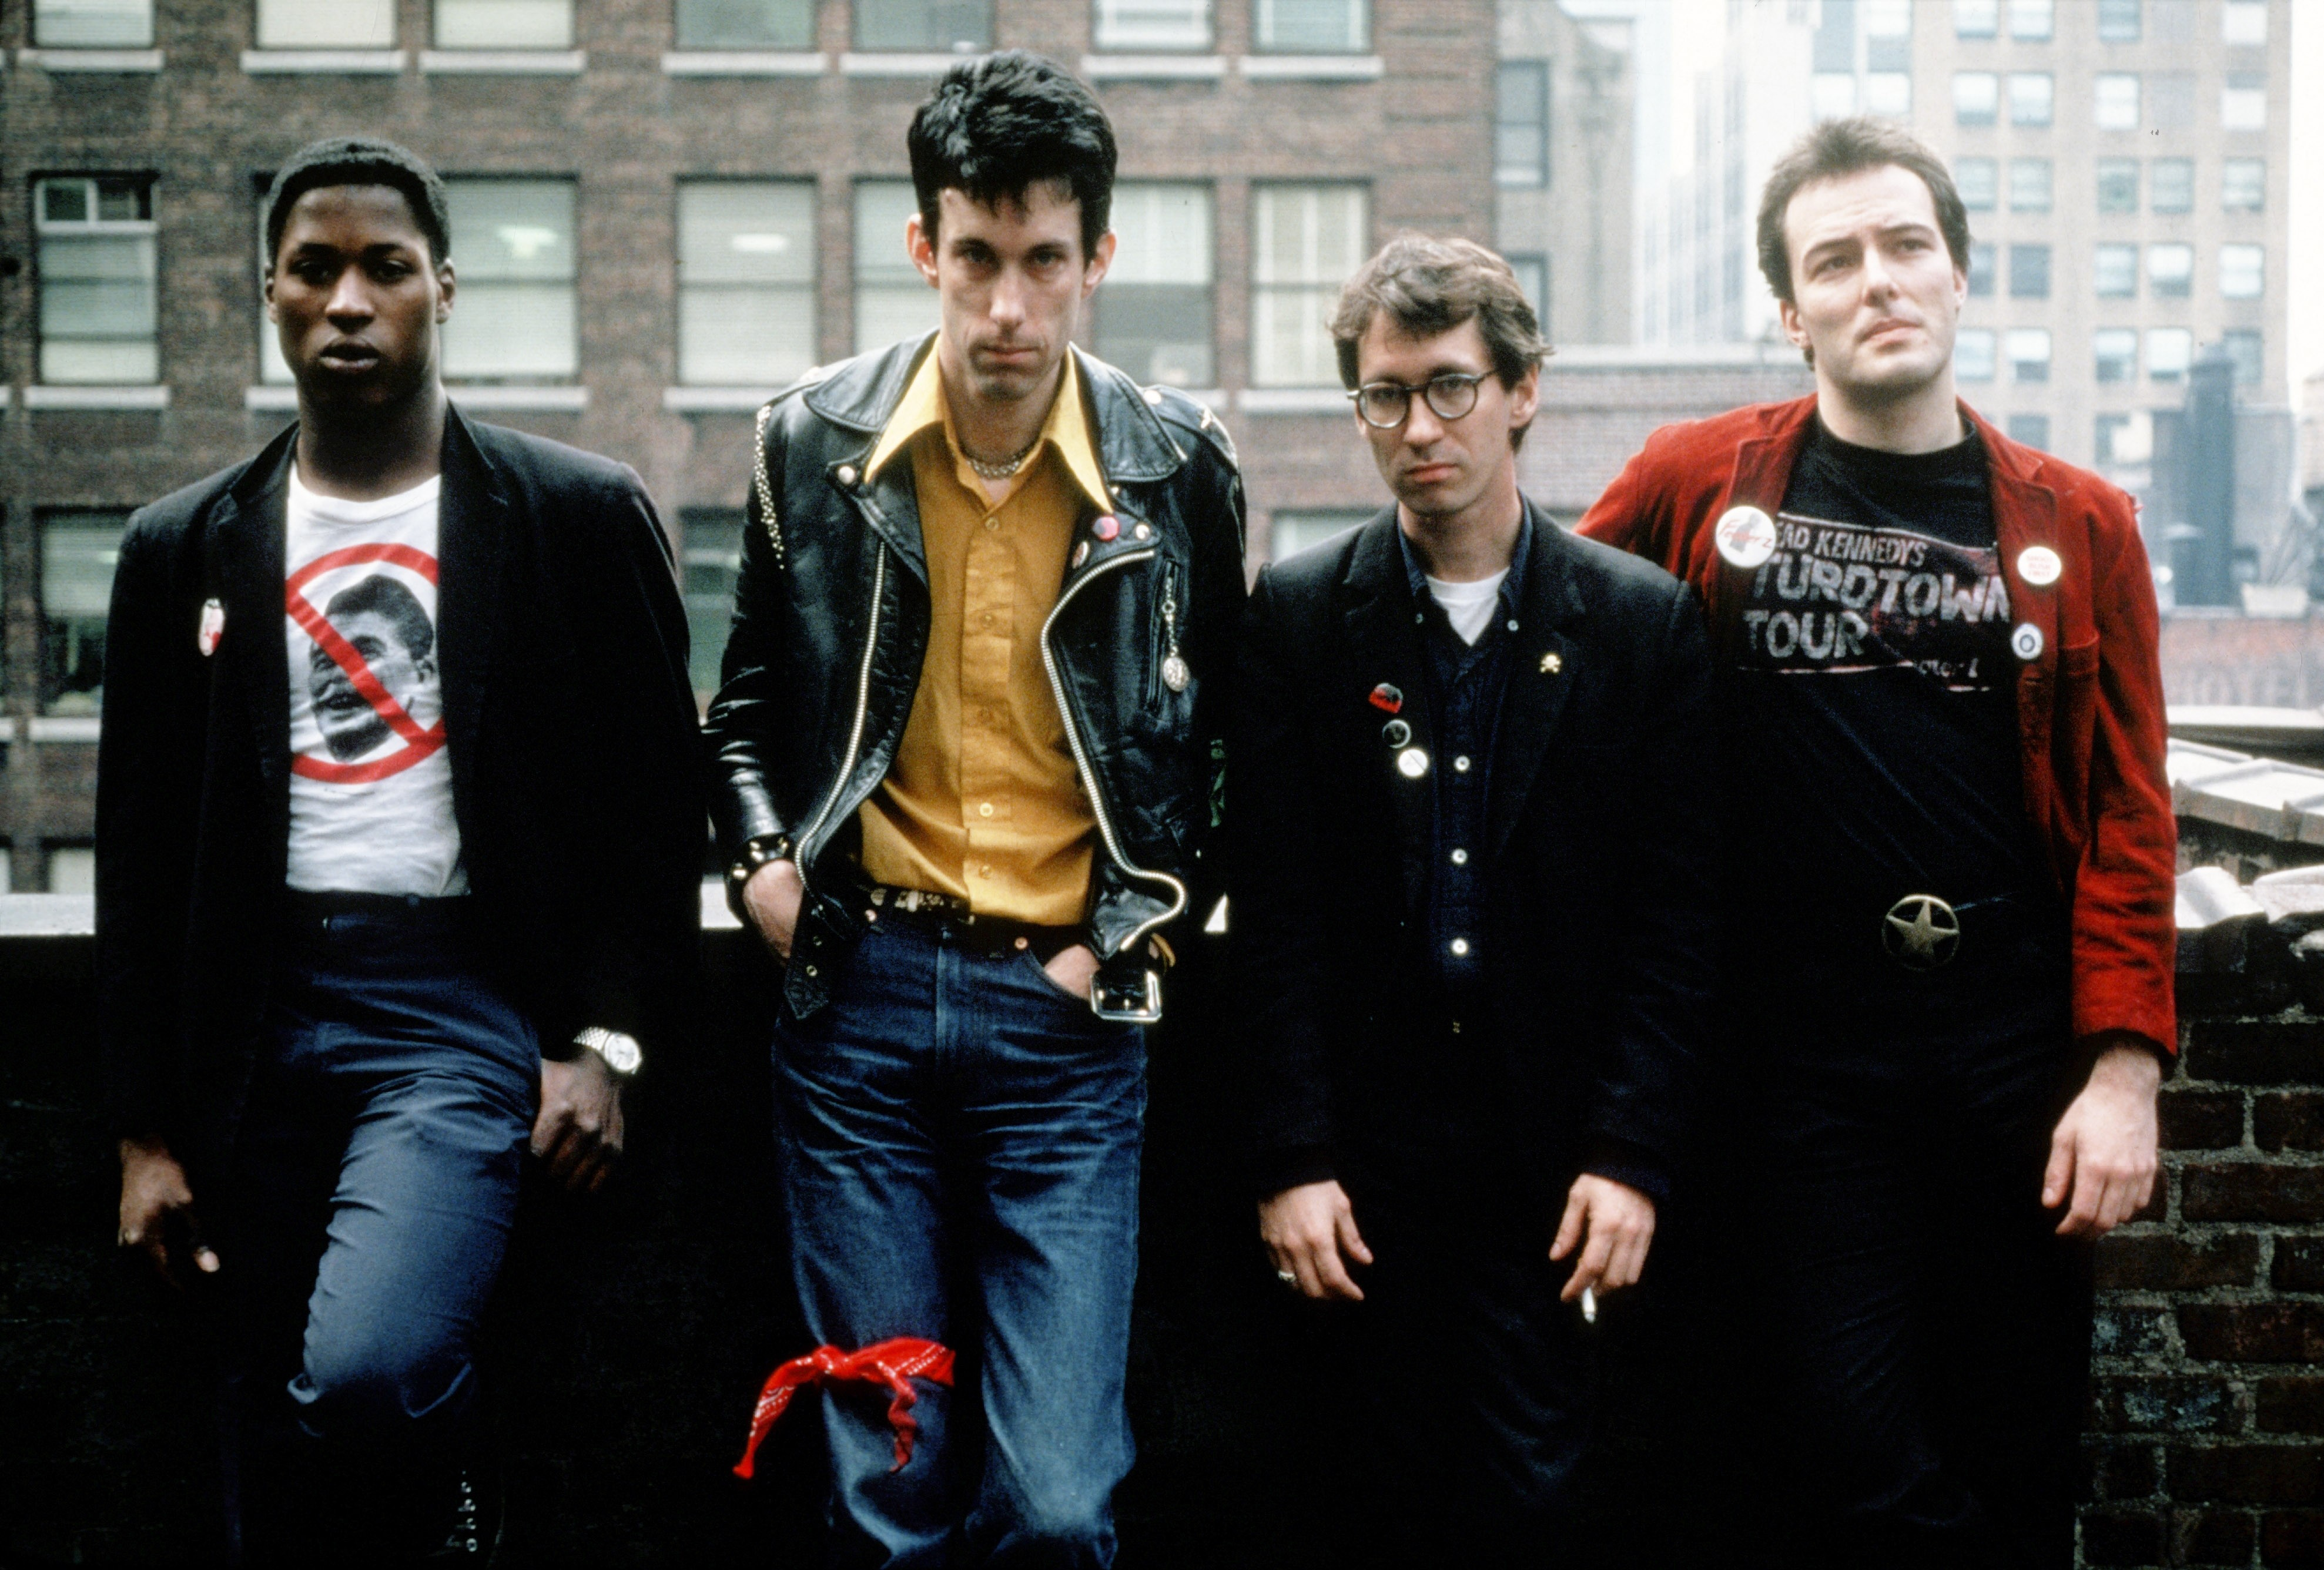 Dead Kennedys: Our 1986 Interview with Jello Biafra